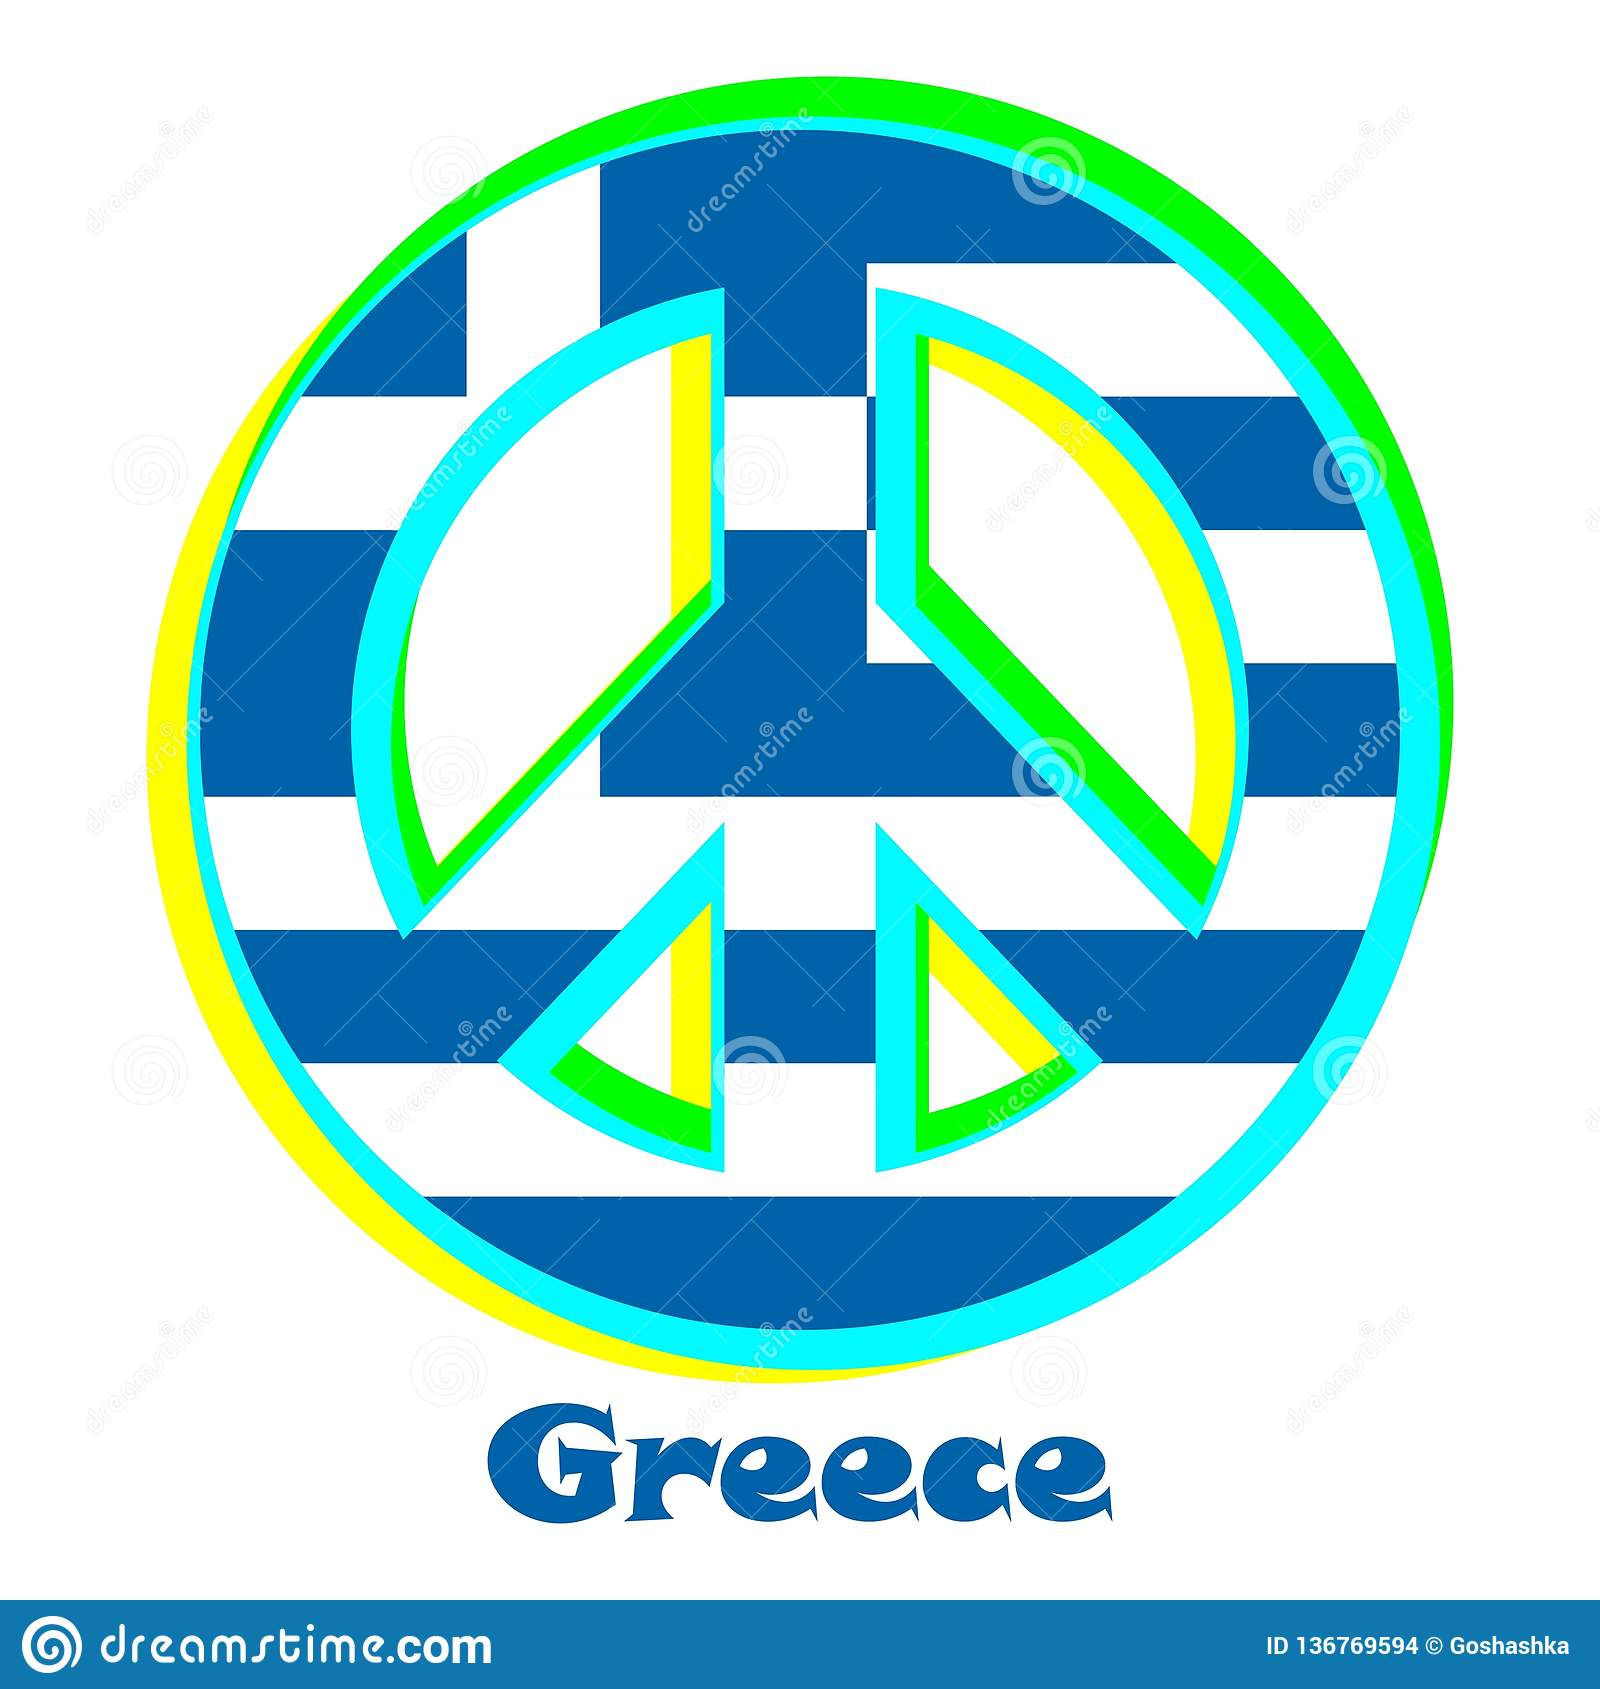 Flag of Greece as a sign of pacifism